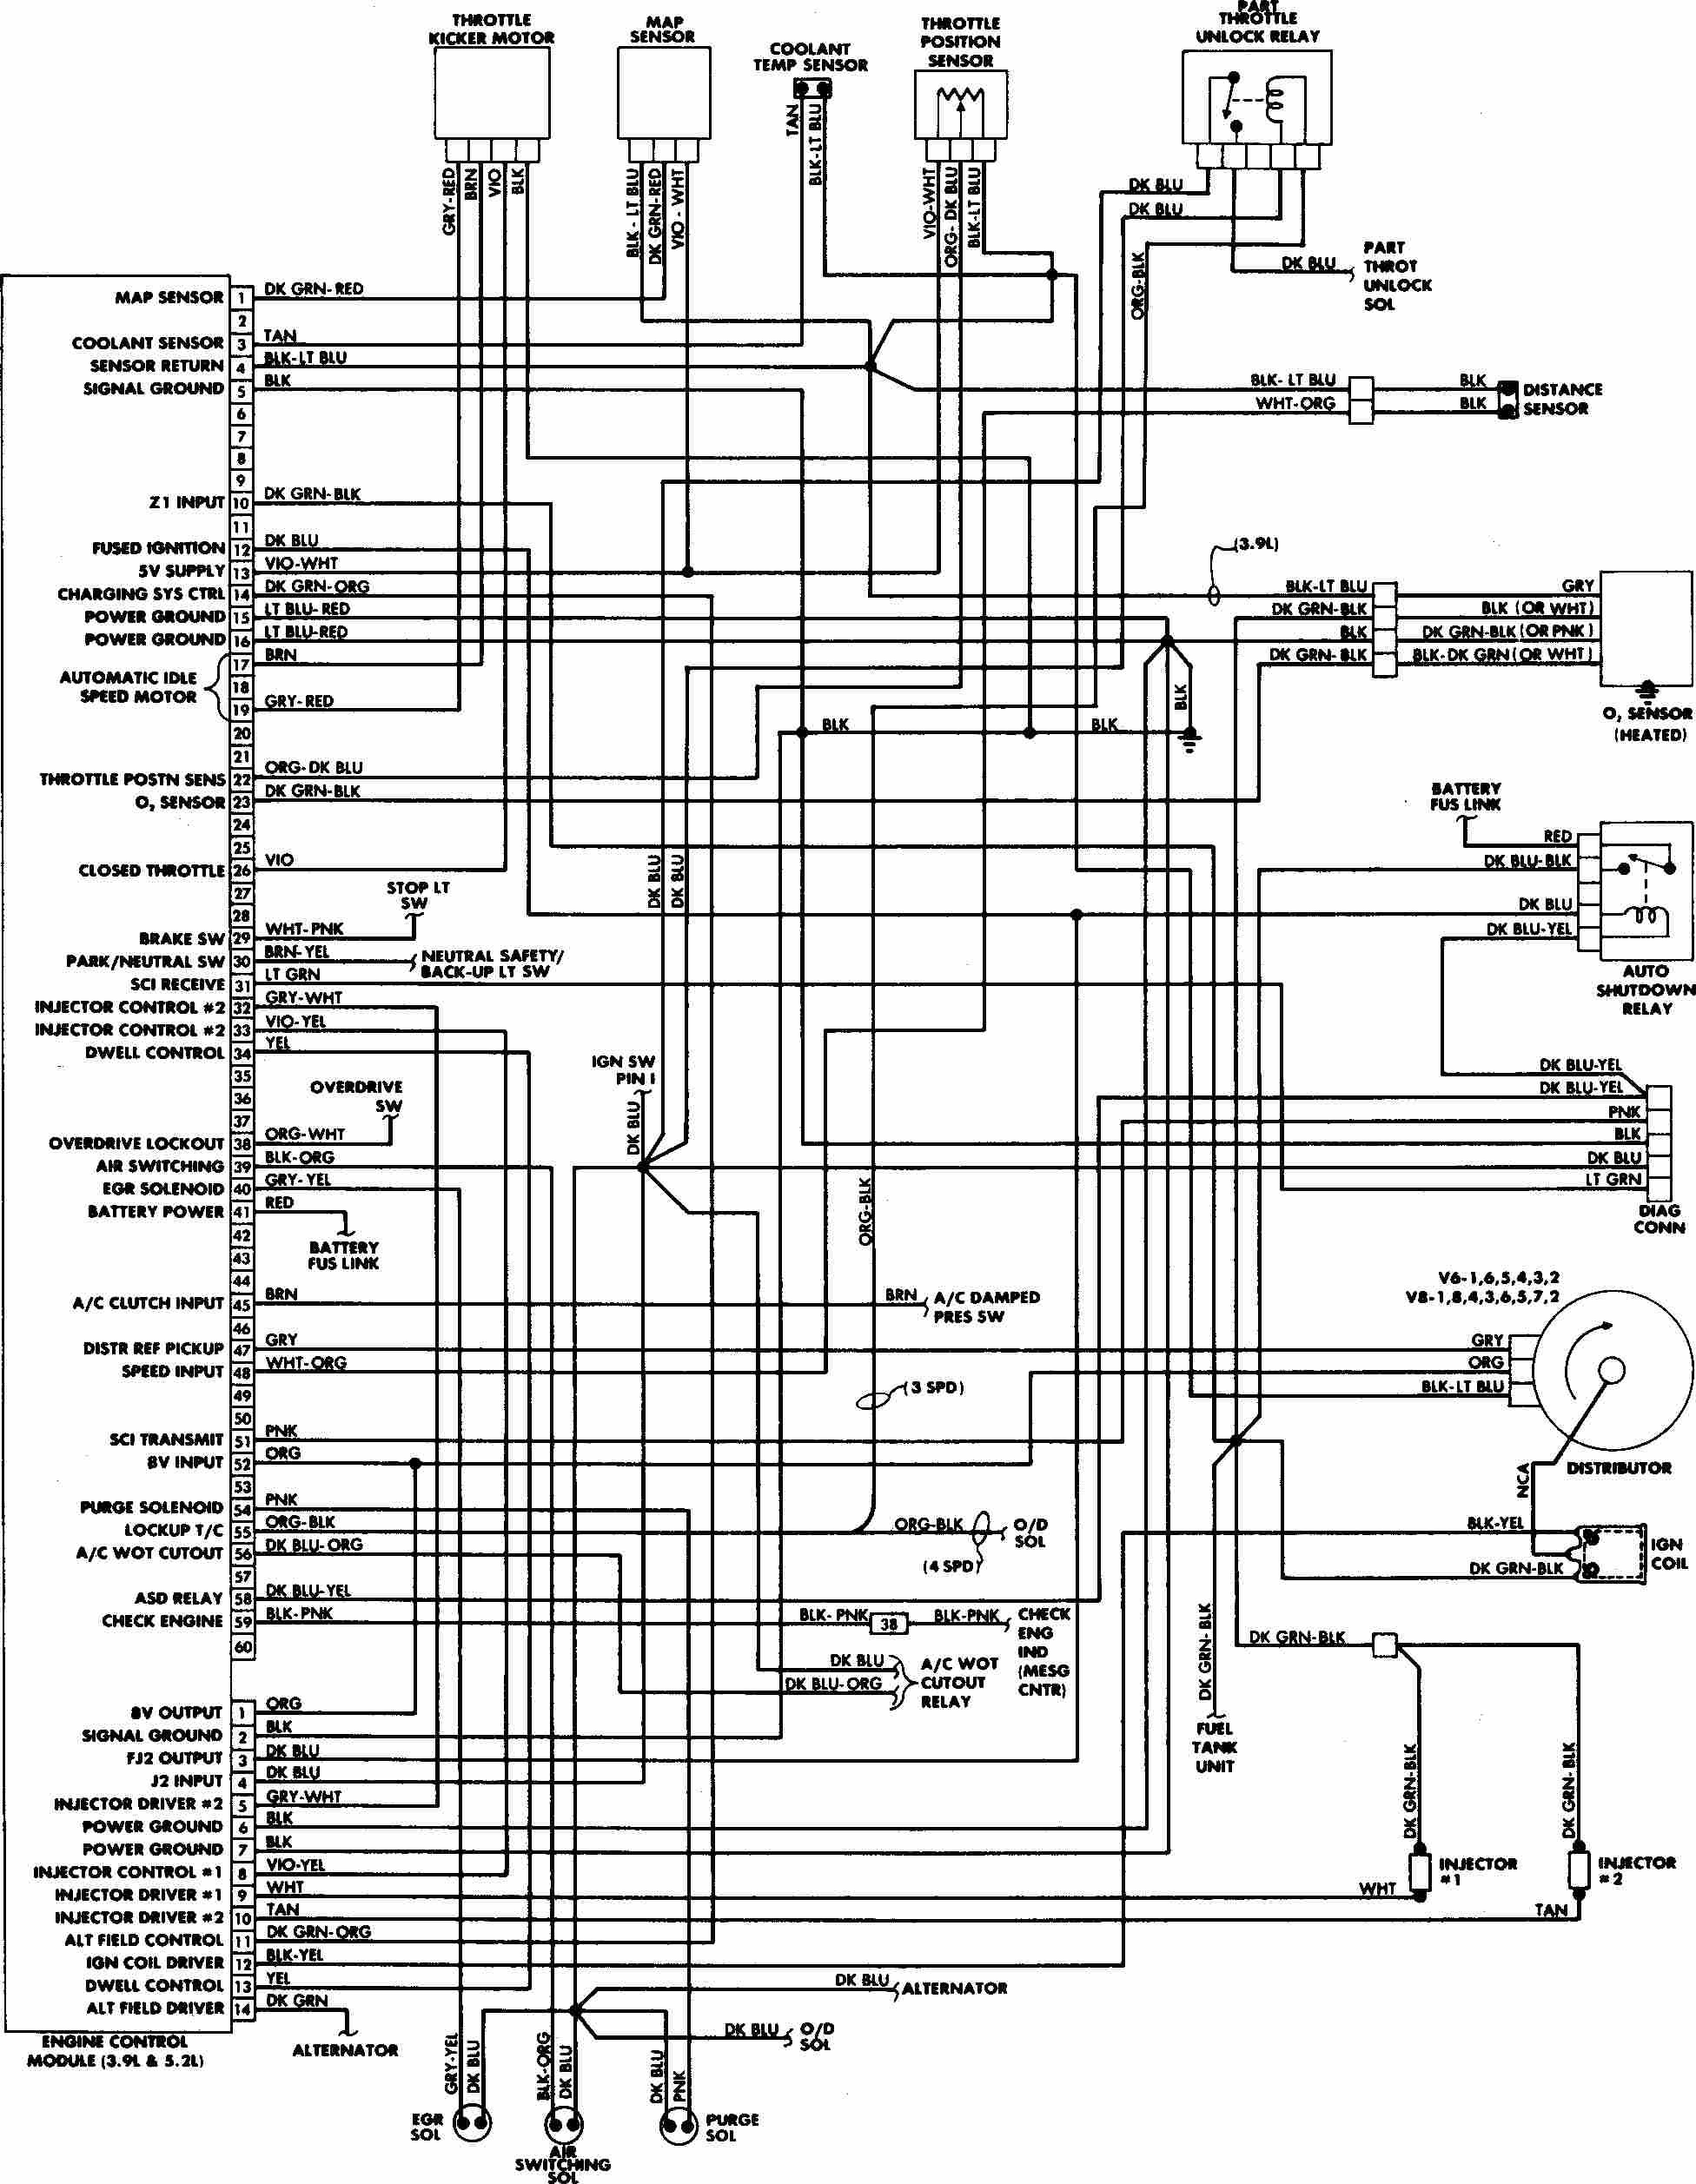 engine control wiring diagram of 1988 dodge w100 | Unique ...